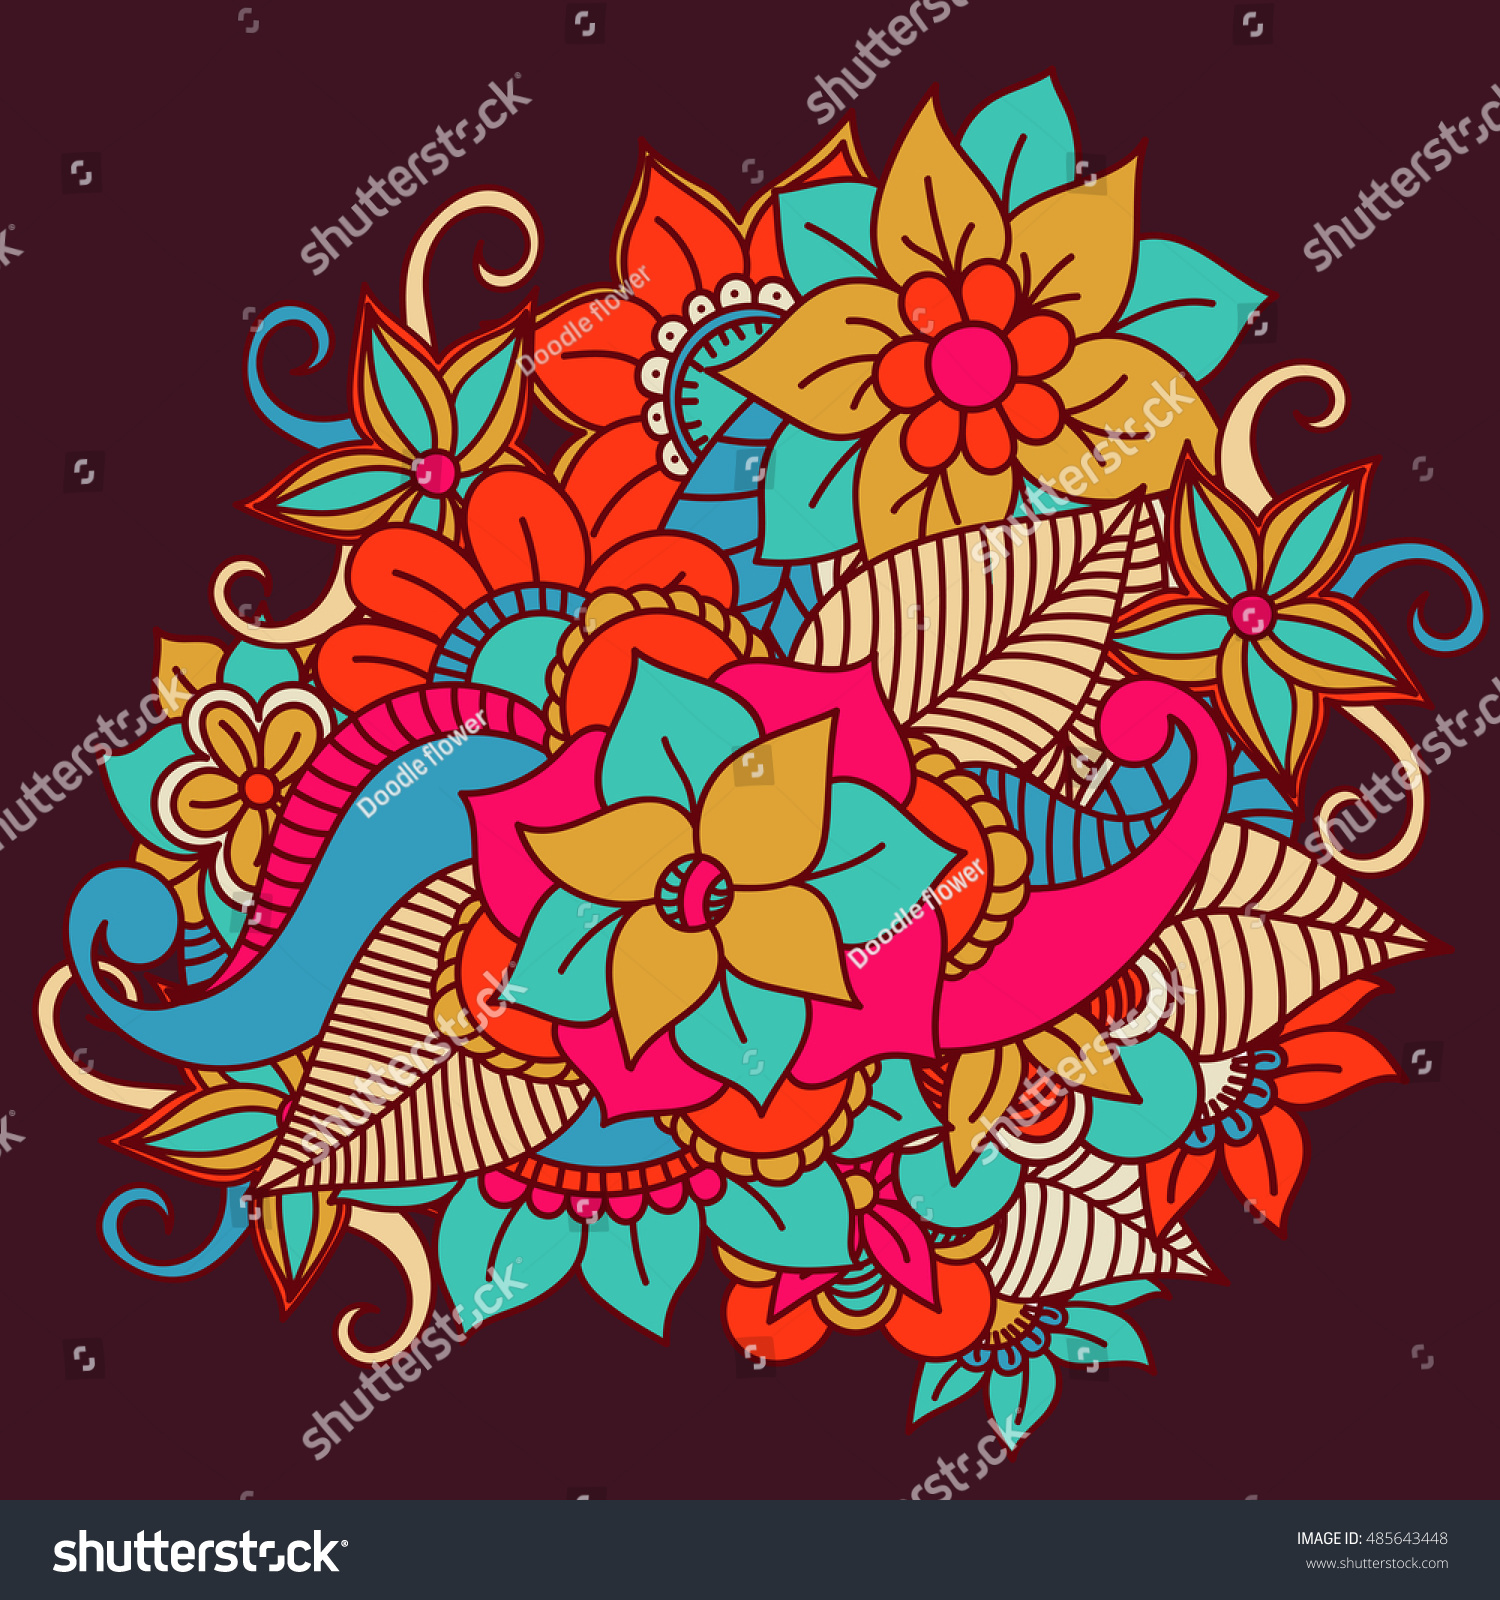 Flowers Vector Flowers Doodle Flowers Zentangle Stock Vector ...